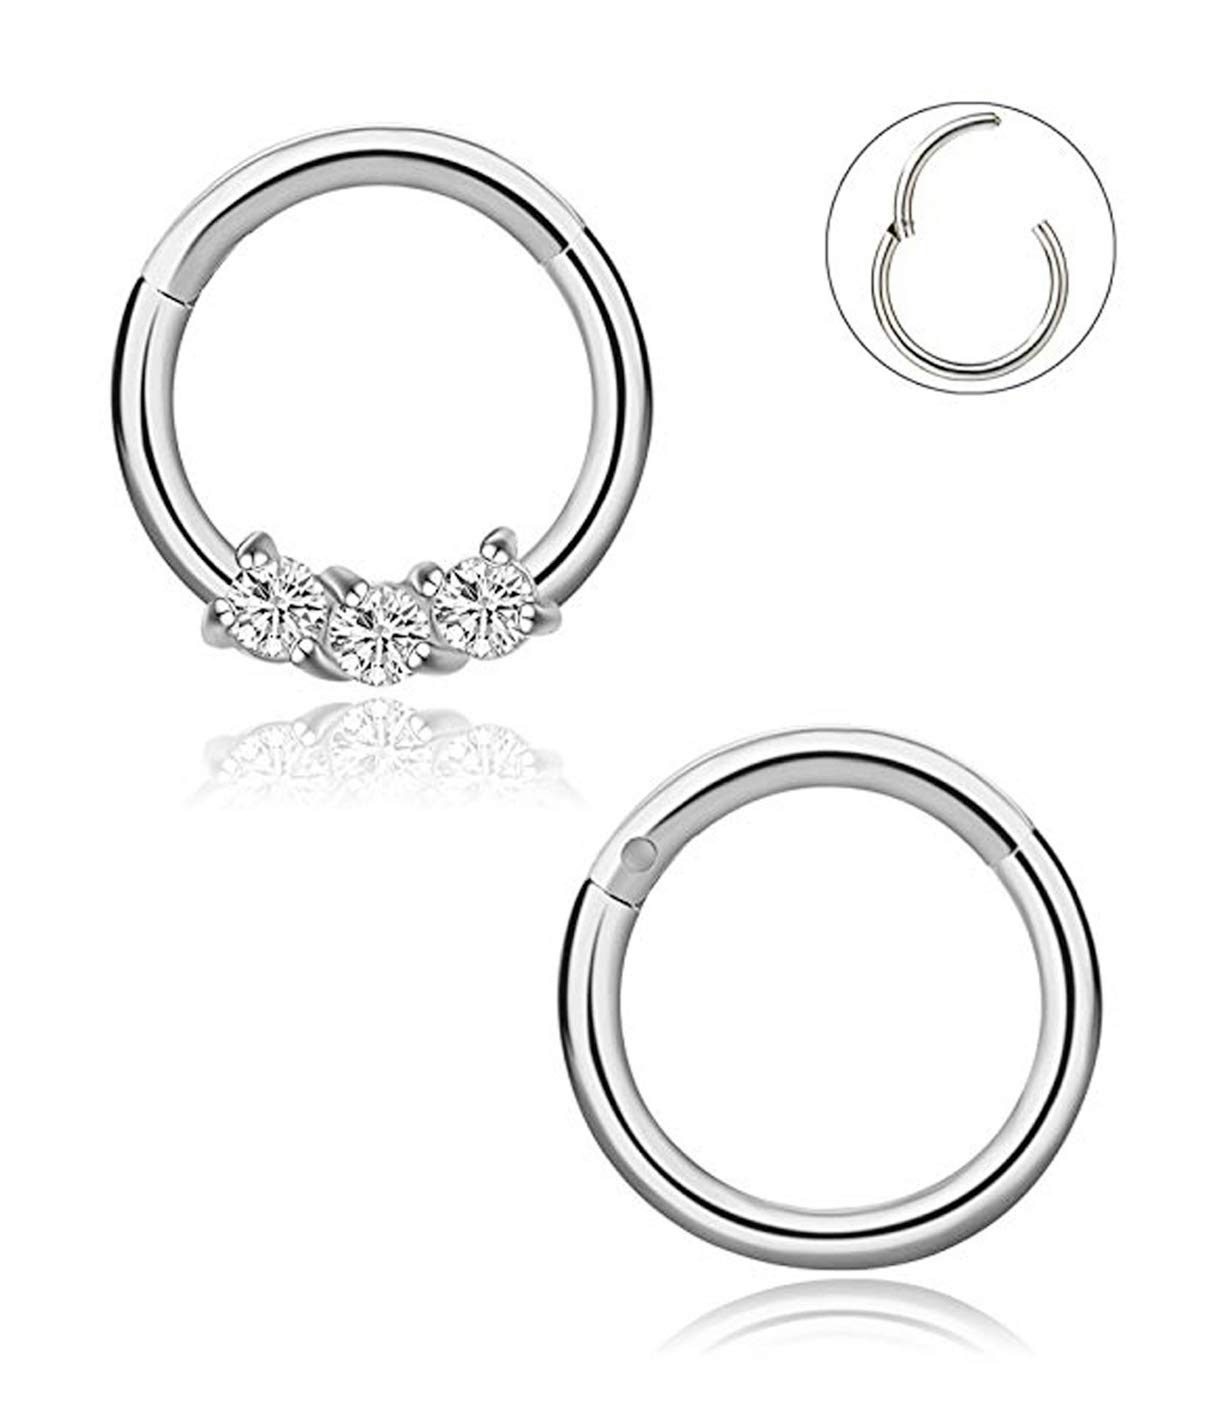 YOVORO 16G 2PCS 316L Stainless Steel Nose Rings Hoop Septum Clicker Ring Cartilage Tragus Piercing 8MM SI by YOVORO